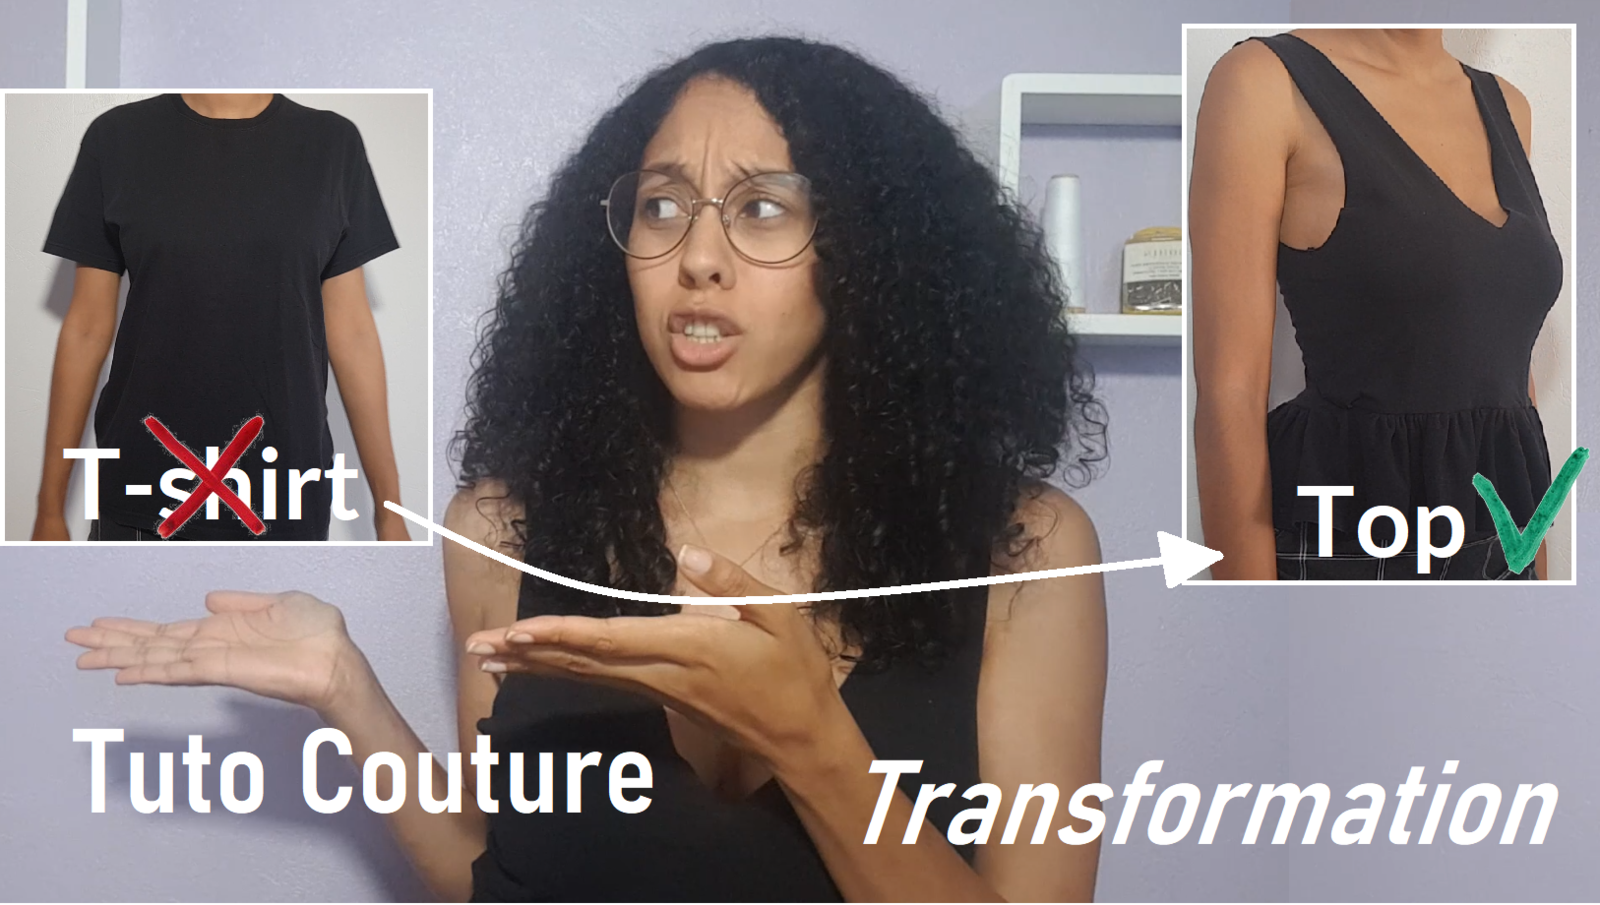 tuto couture upcycling t-shirt